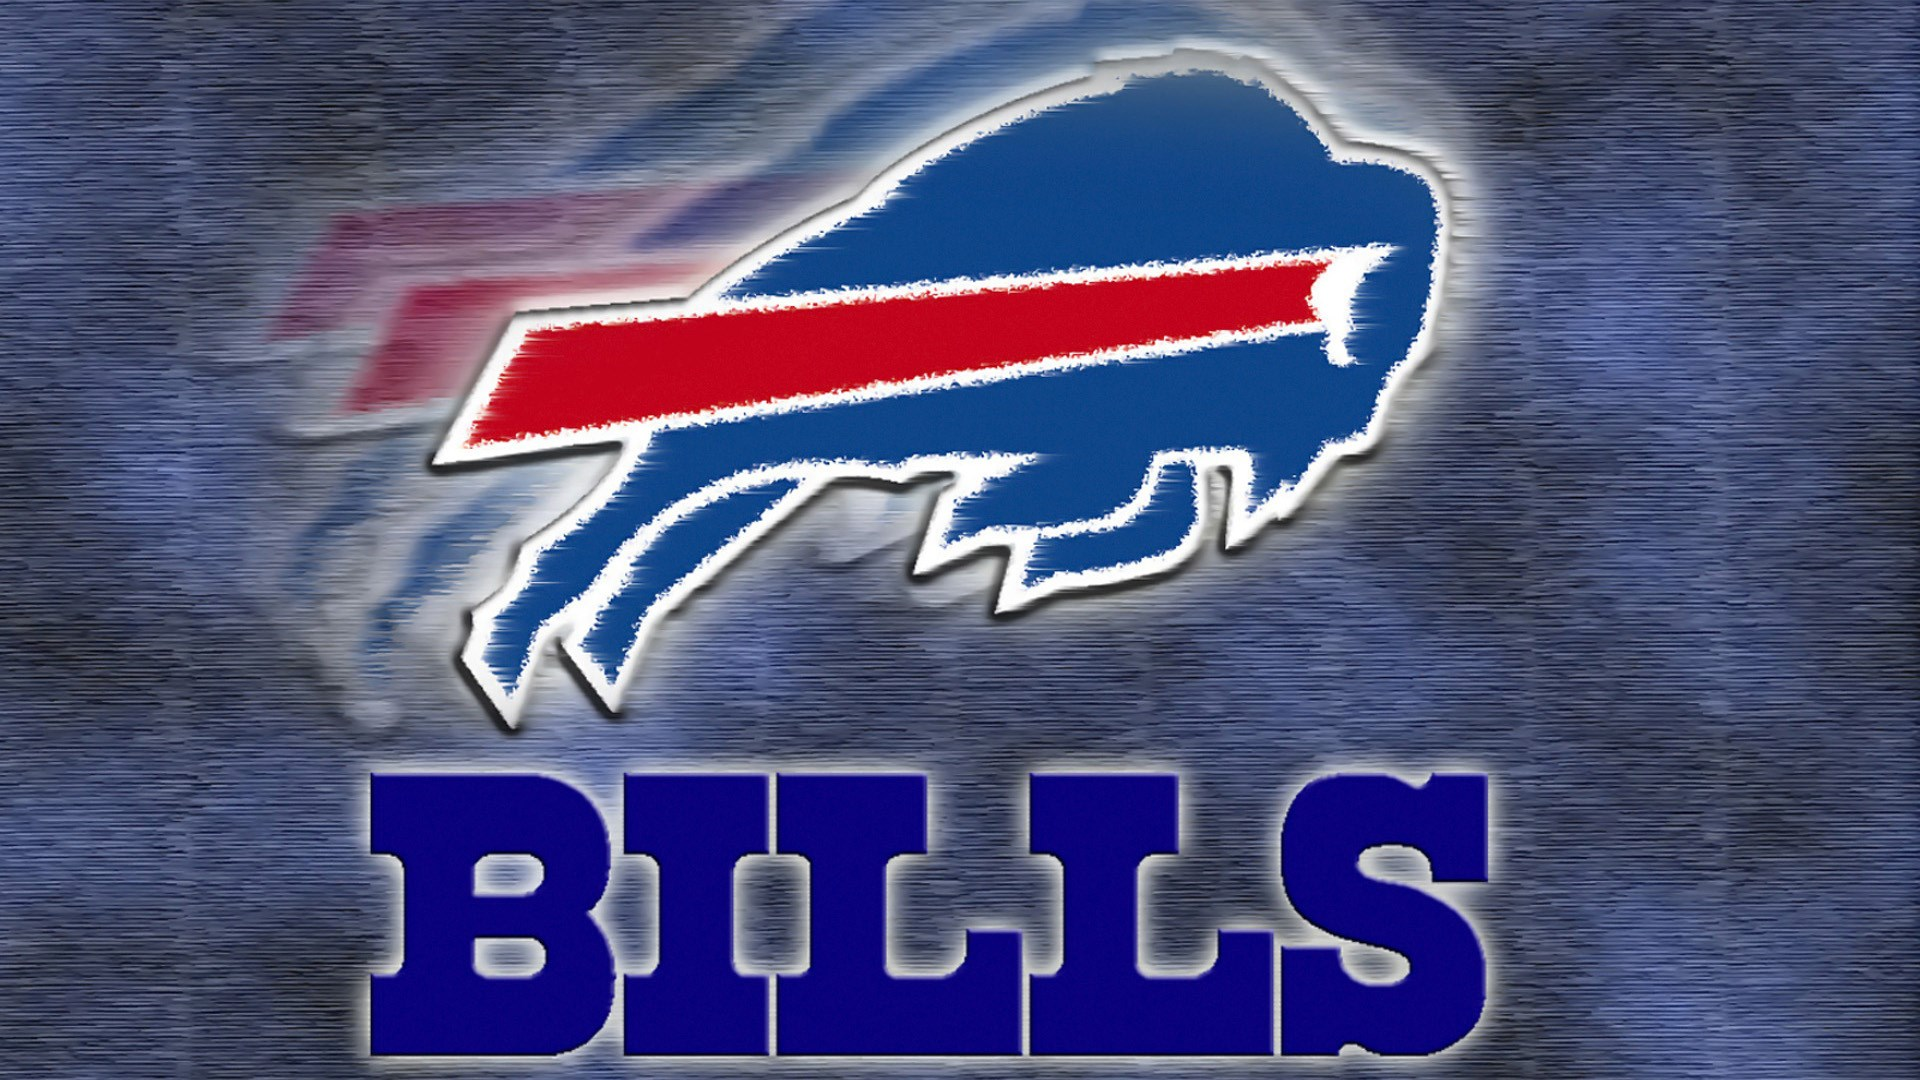 buffalo-bills-backgrounds-hd-1920x1080-kB-wallpaper-wp3803496